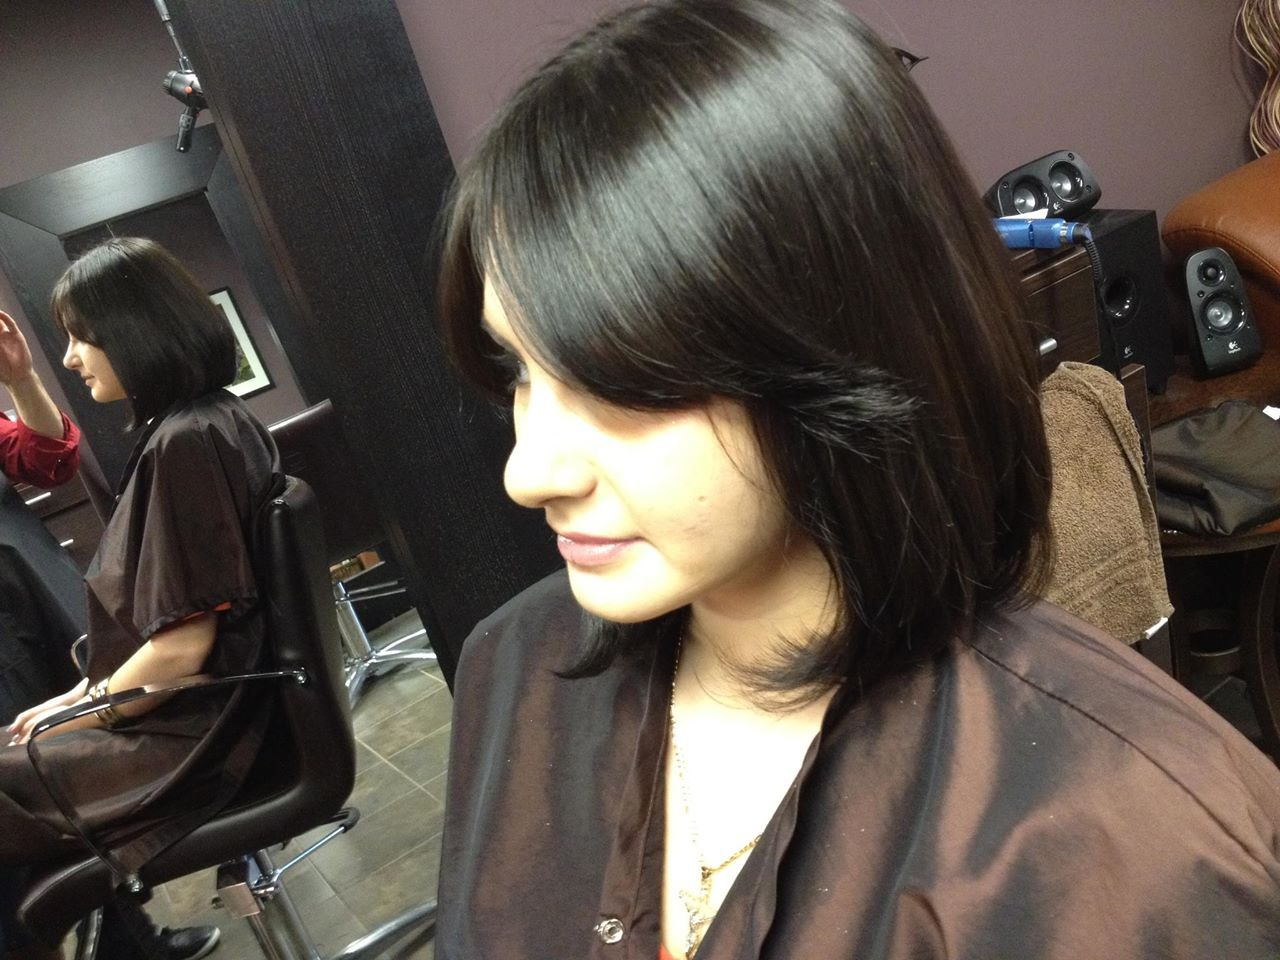 Hair cutting and head shaving stories - Indian Headshave Stories Shika S Bobcut